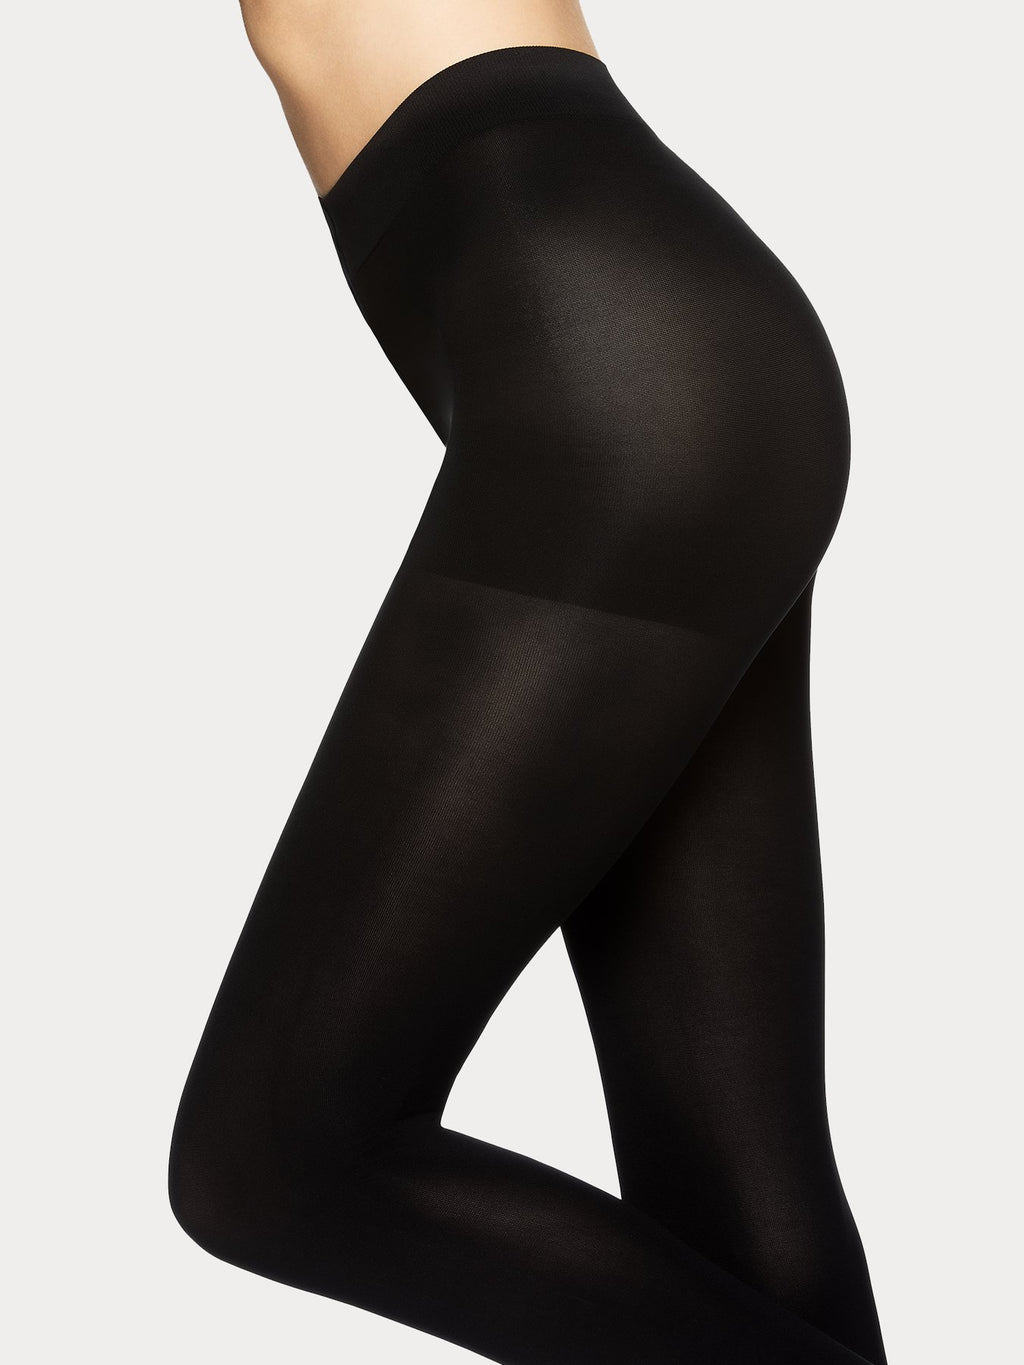 Vogue hosiery velvet matt 60 den medium shaping tights.